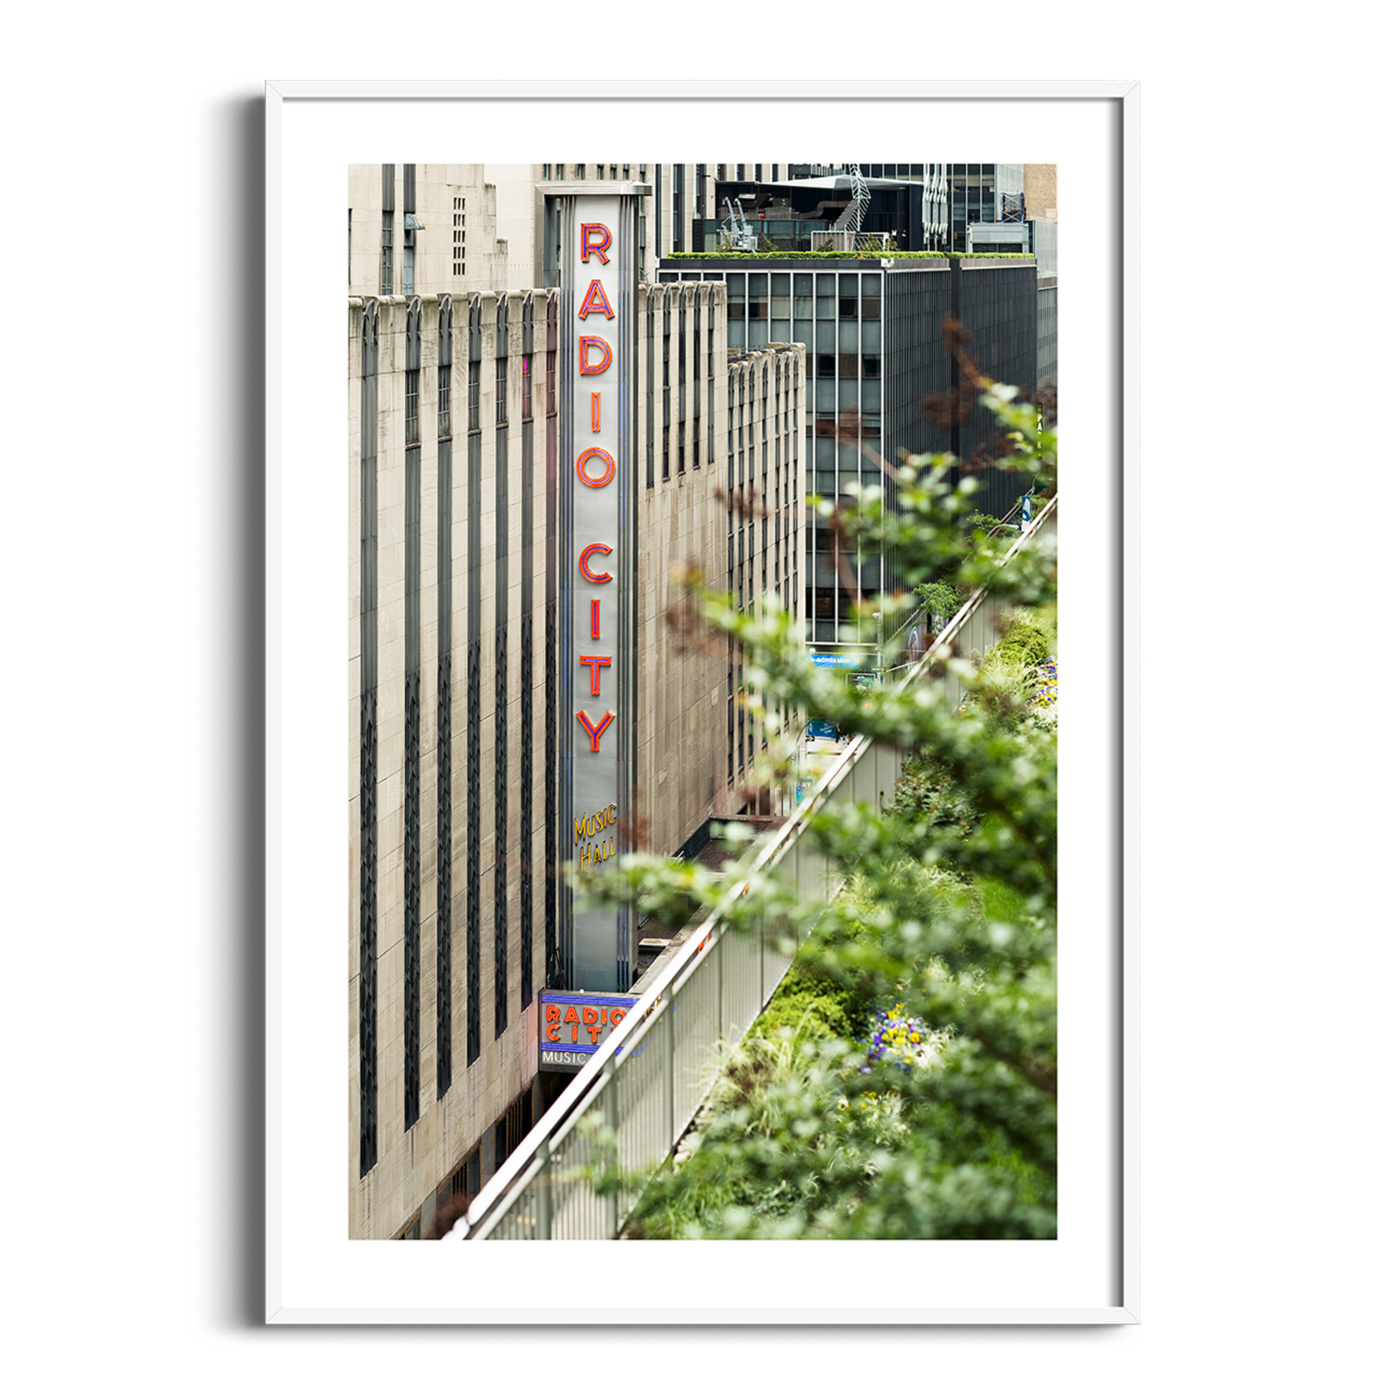 Radio City Music Hall print in white frame with border